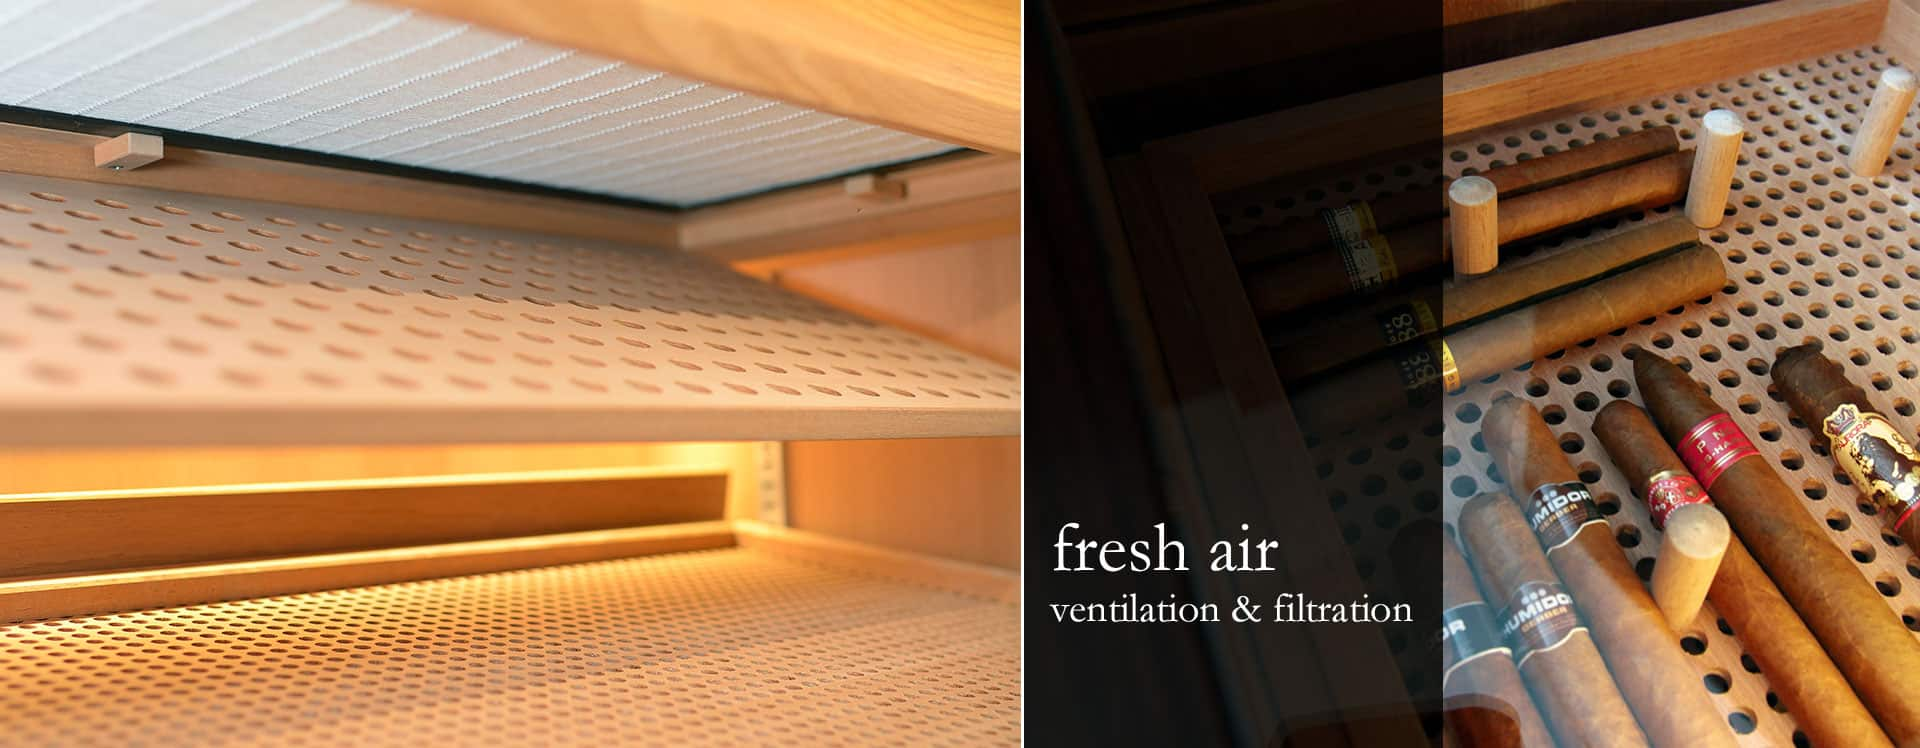 GERBER Humidors Ventilation & filtration systems